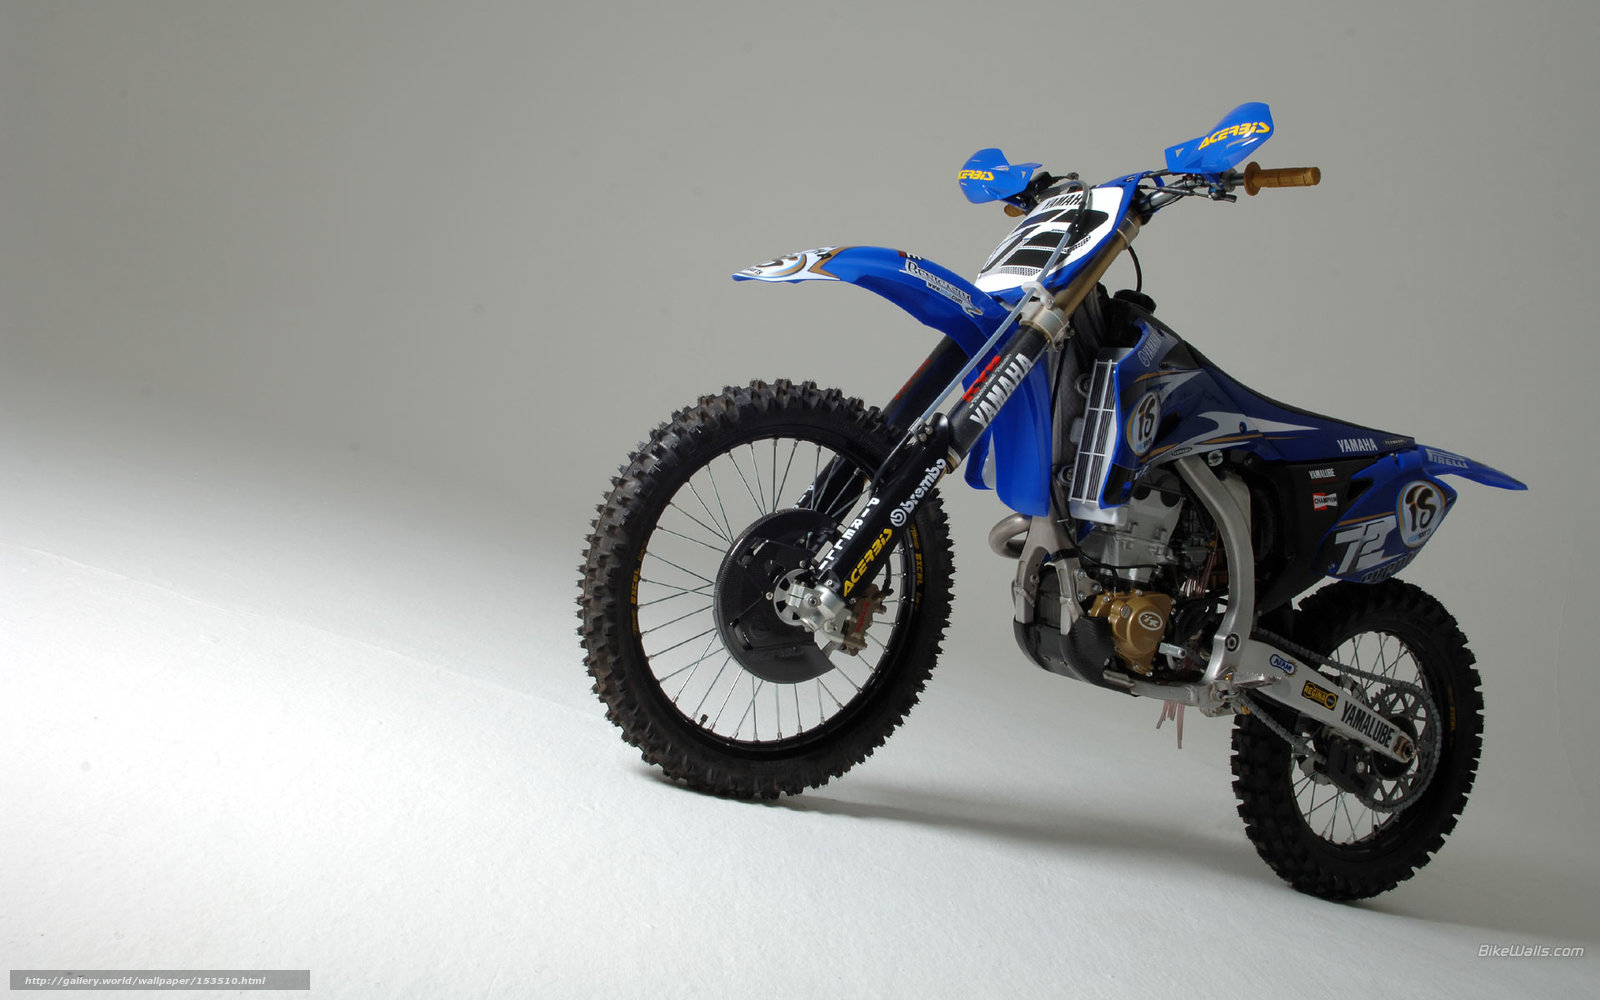 Download Wallpaper Yamaha Motocross YZ450F 2006 Free Desktop In The Resolution 1920x1200 Picture No153510